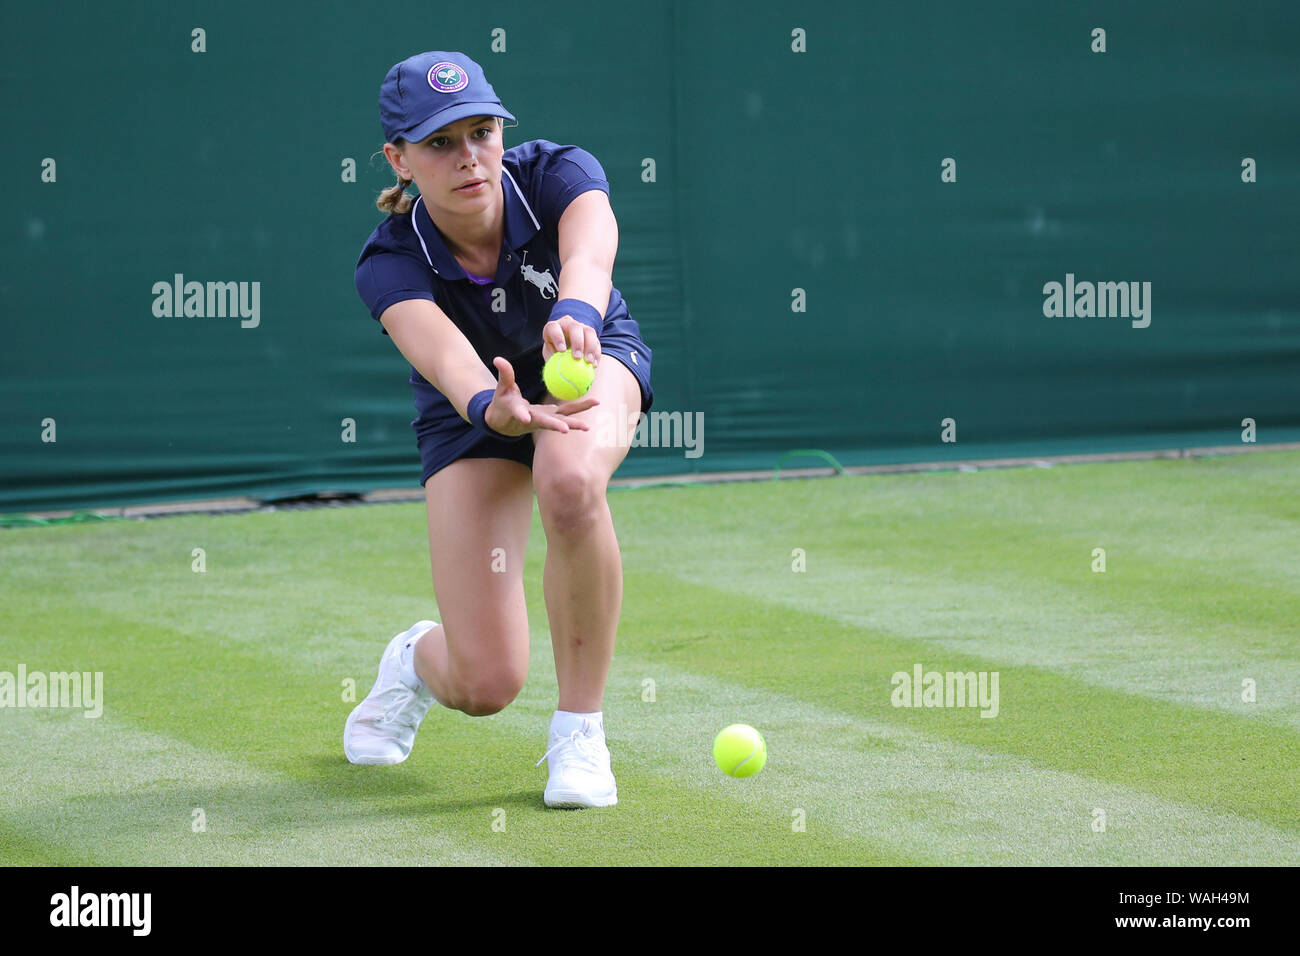 Ball Girl in action during 2019 Wimbledon Championships, London, England, United Kingdom Stock Photo